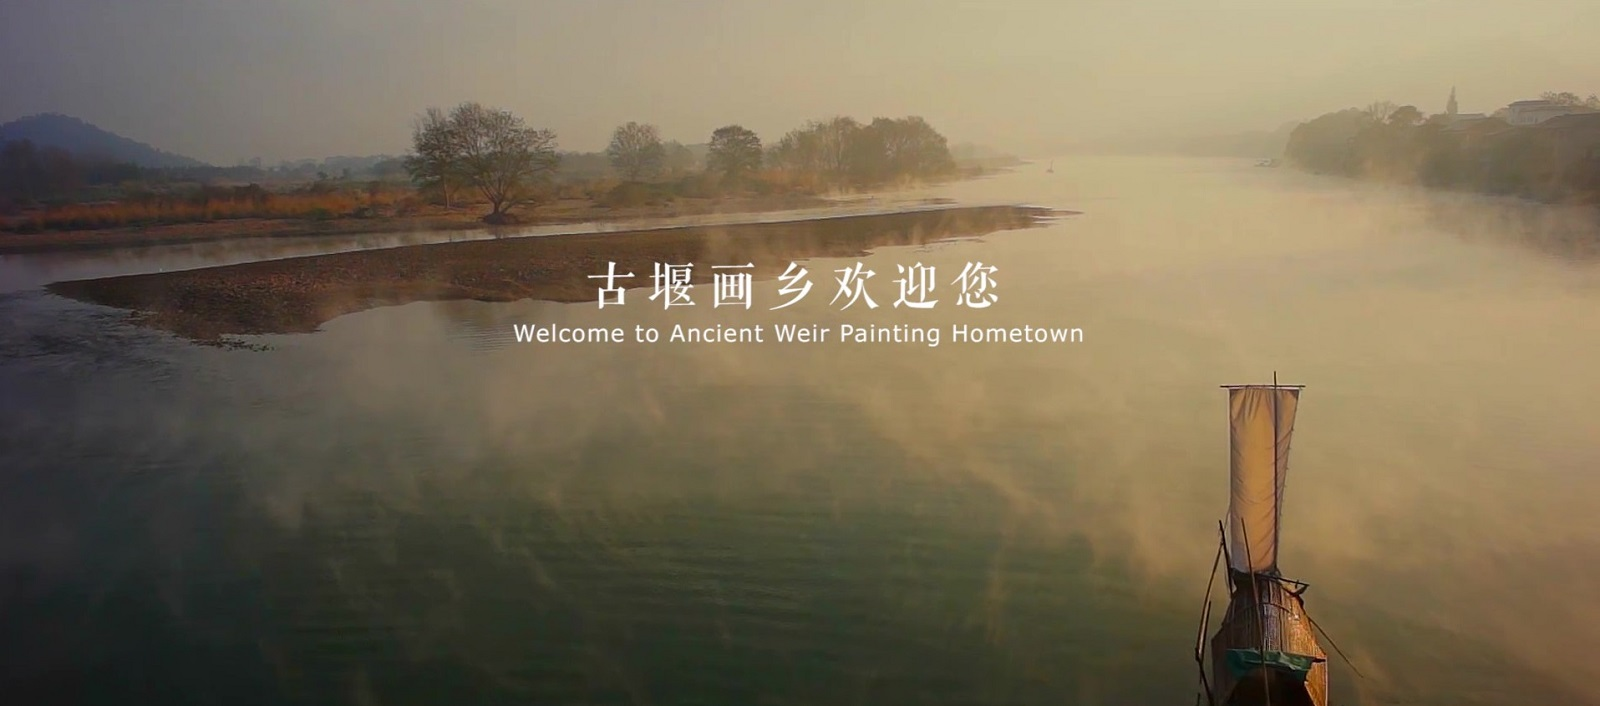 Welcome to Ancient Weir Painting Hometown